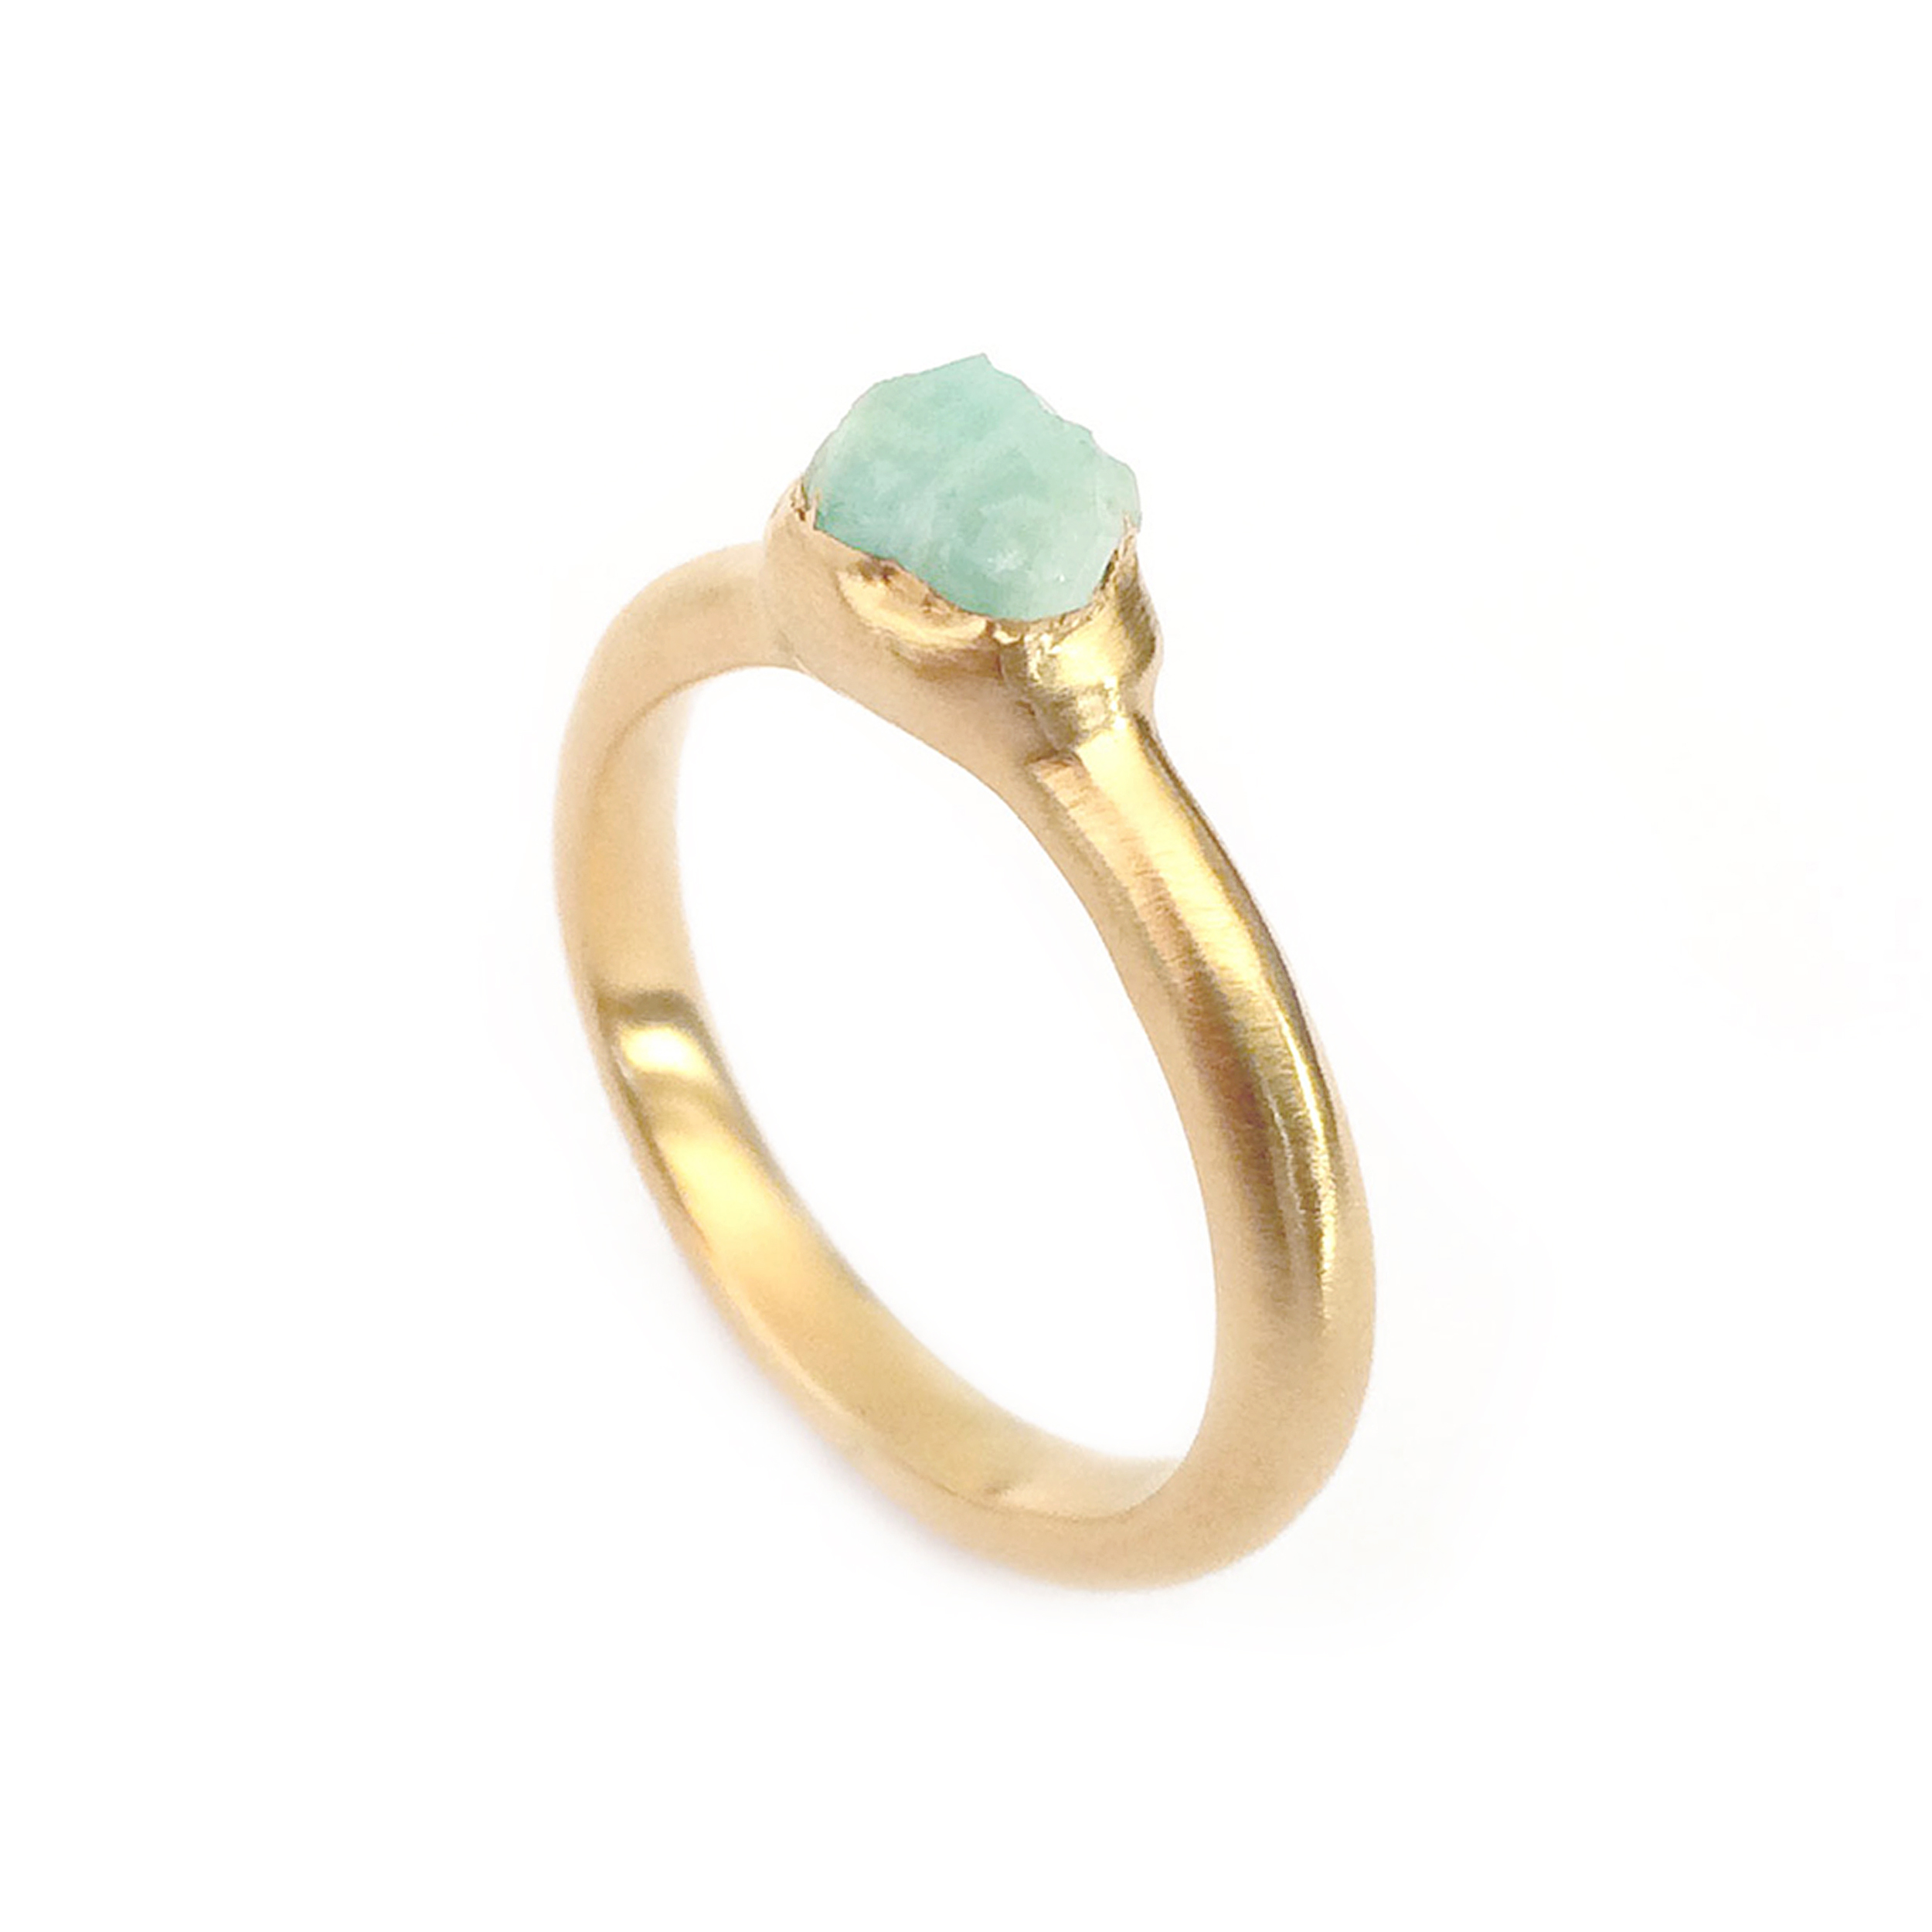 6. Mabel Hasell - Gold plated apatite  crystal ring.jpg